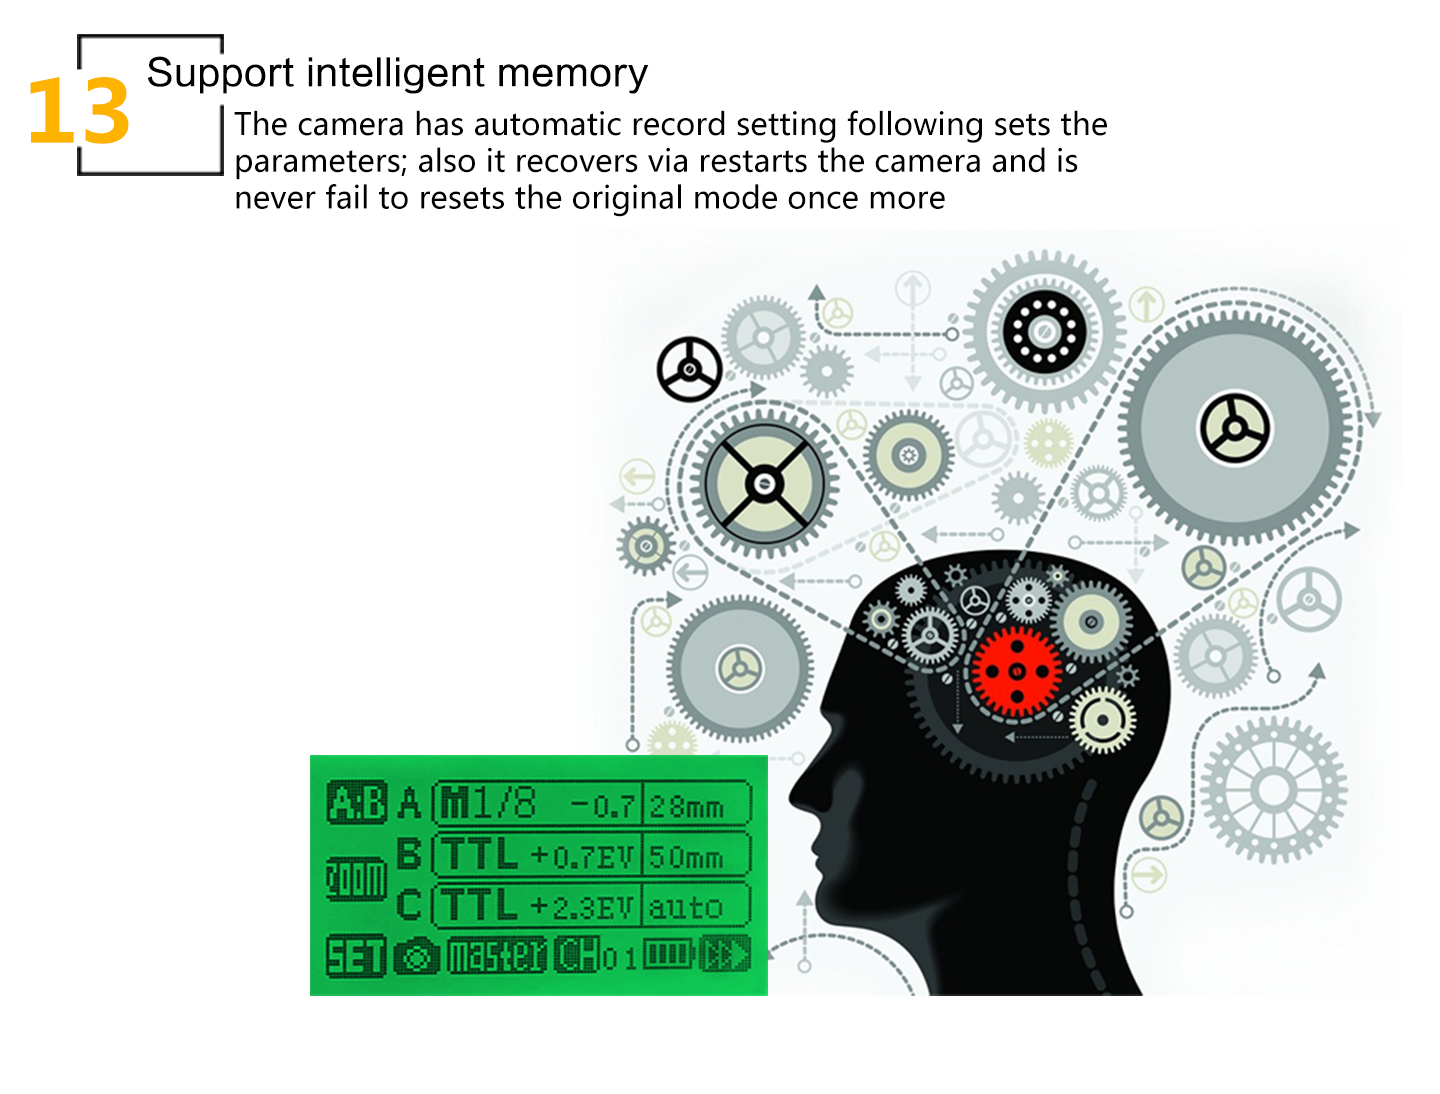 Support intelligent memory